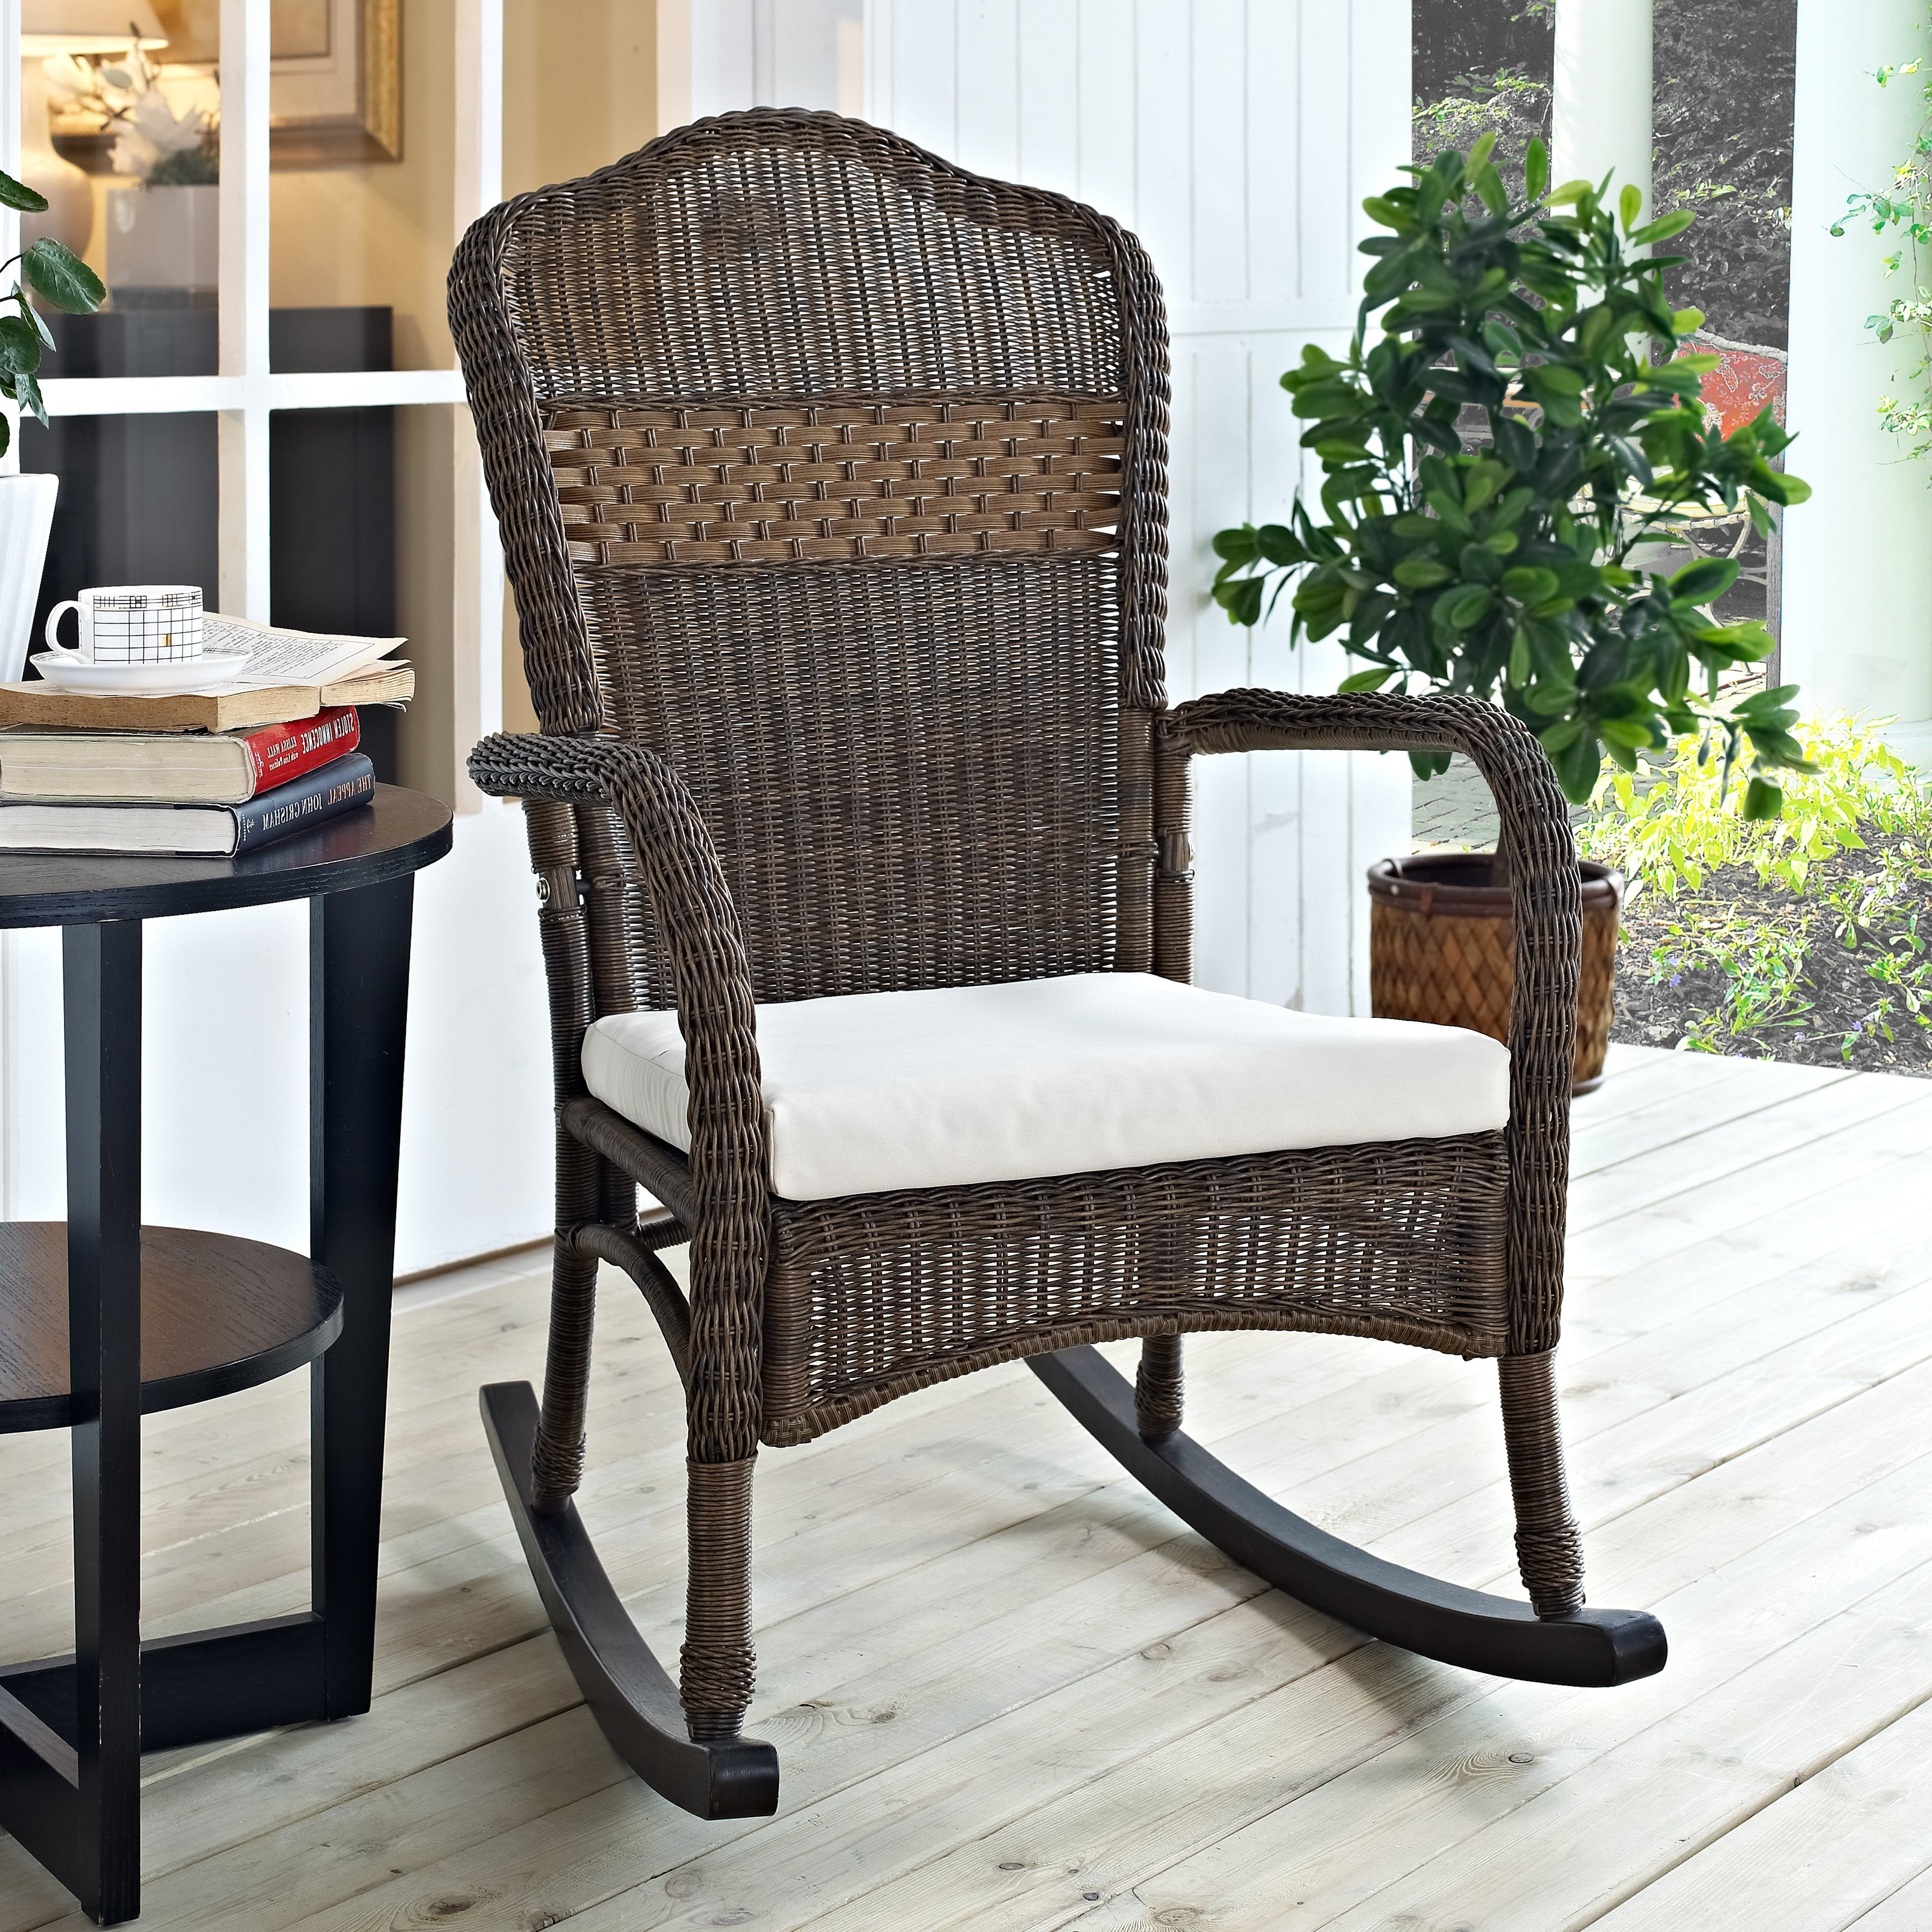 Widely Used Coral Coast Mocha Resin Wicker Rocking Chair With Beige Cushion Inside Used Patio Rocking Chairs (View 7 of 20)